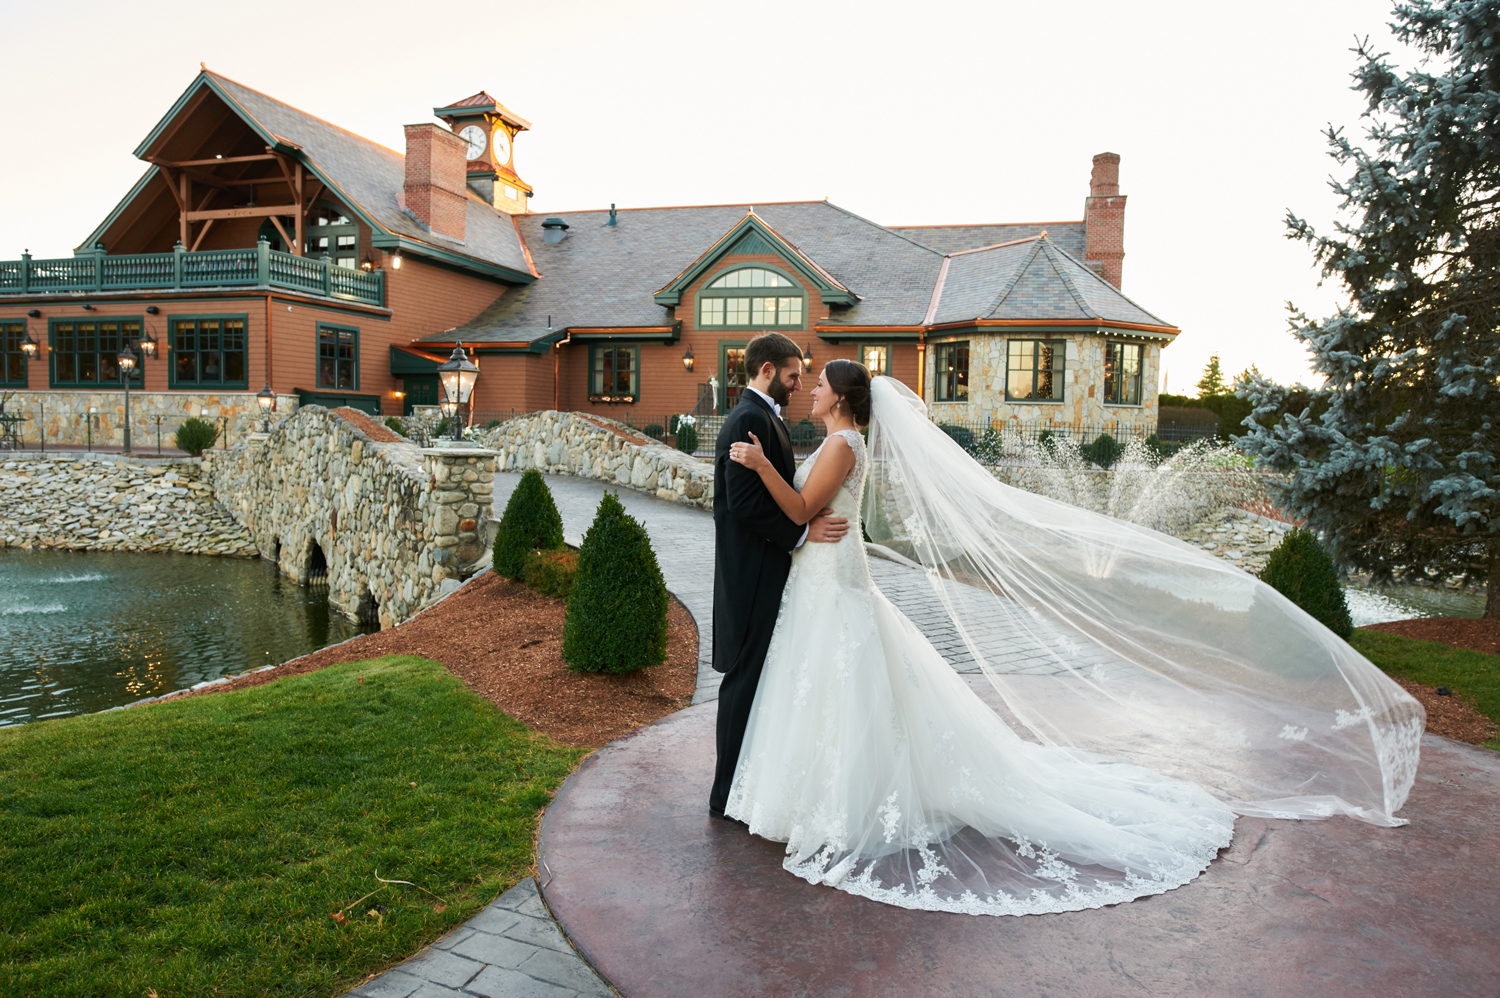 Wedding at Tewksbury Country Club, Bride & Groom on Bridge